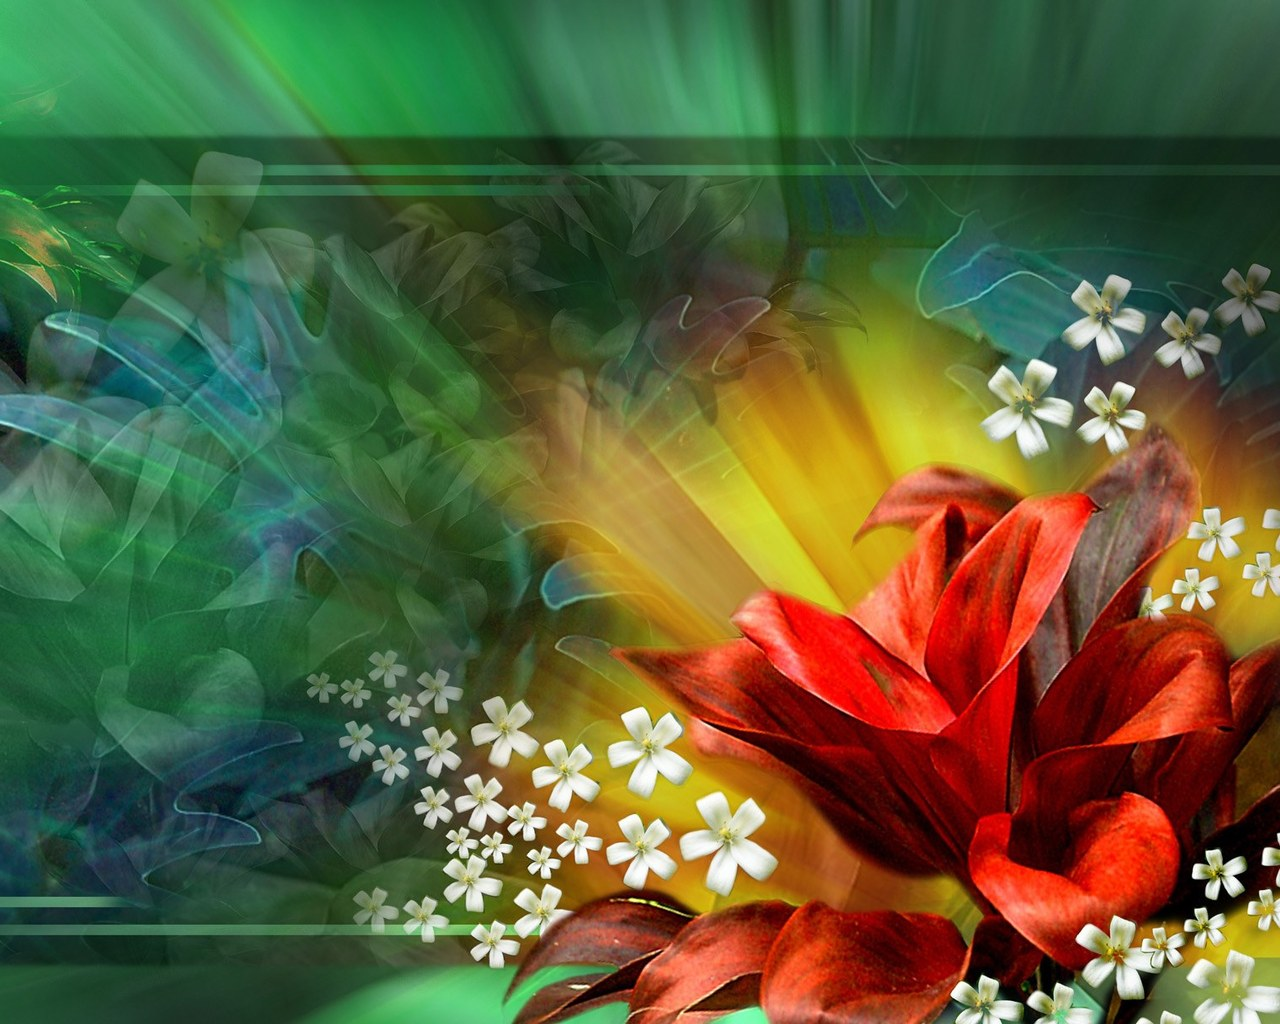 Desktop Wallpapers Desktop 3d Wallpapers Animated Desktop 1280x1024